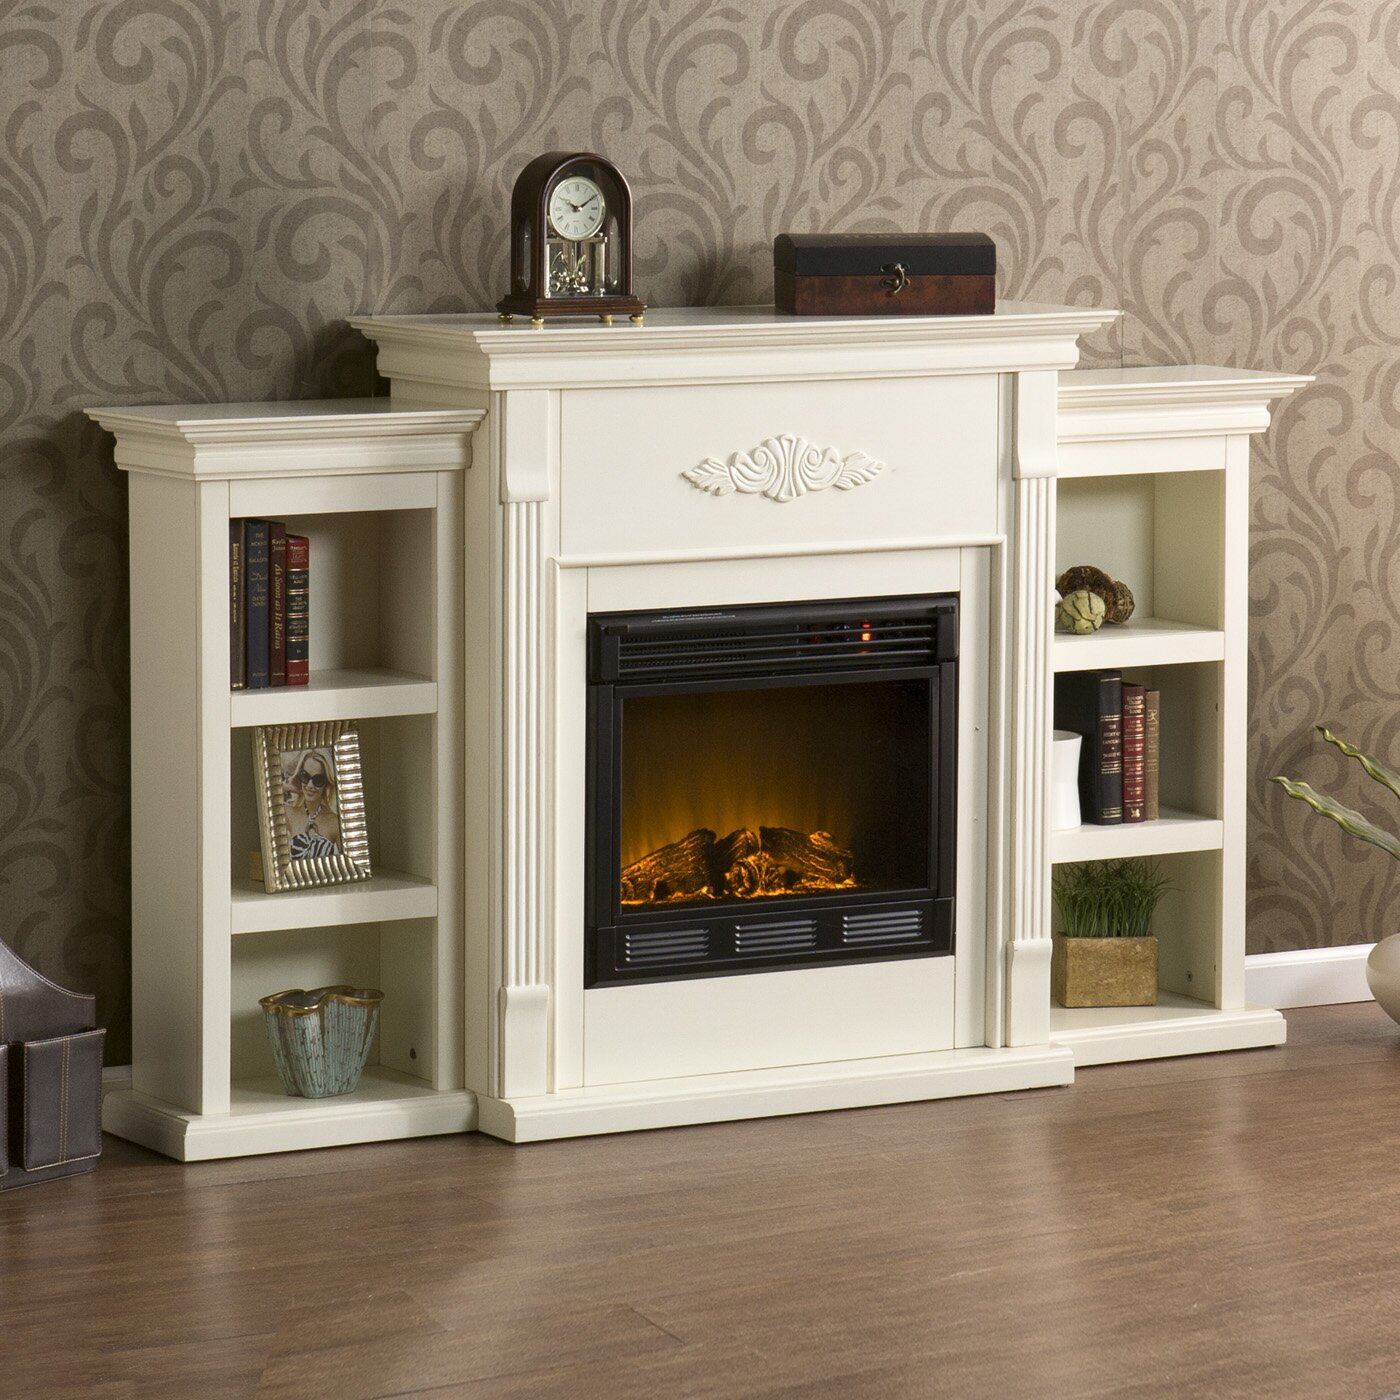 62 Grand Cherry Electric Fireplace Reviews - Electric Fireplace Heat